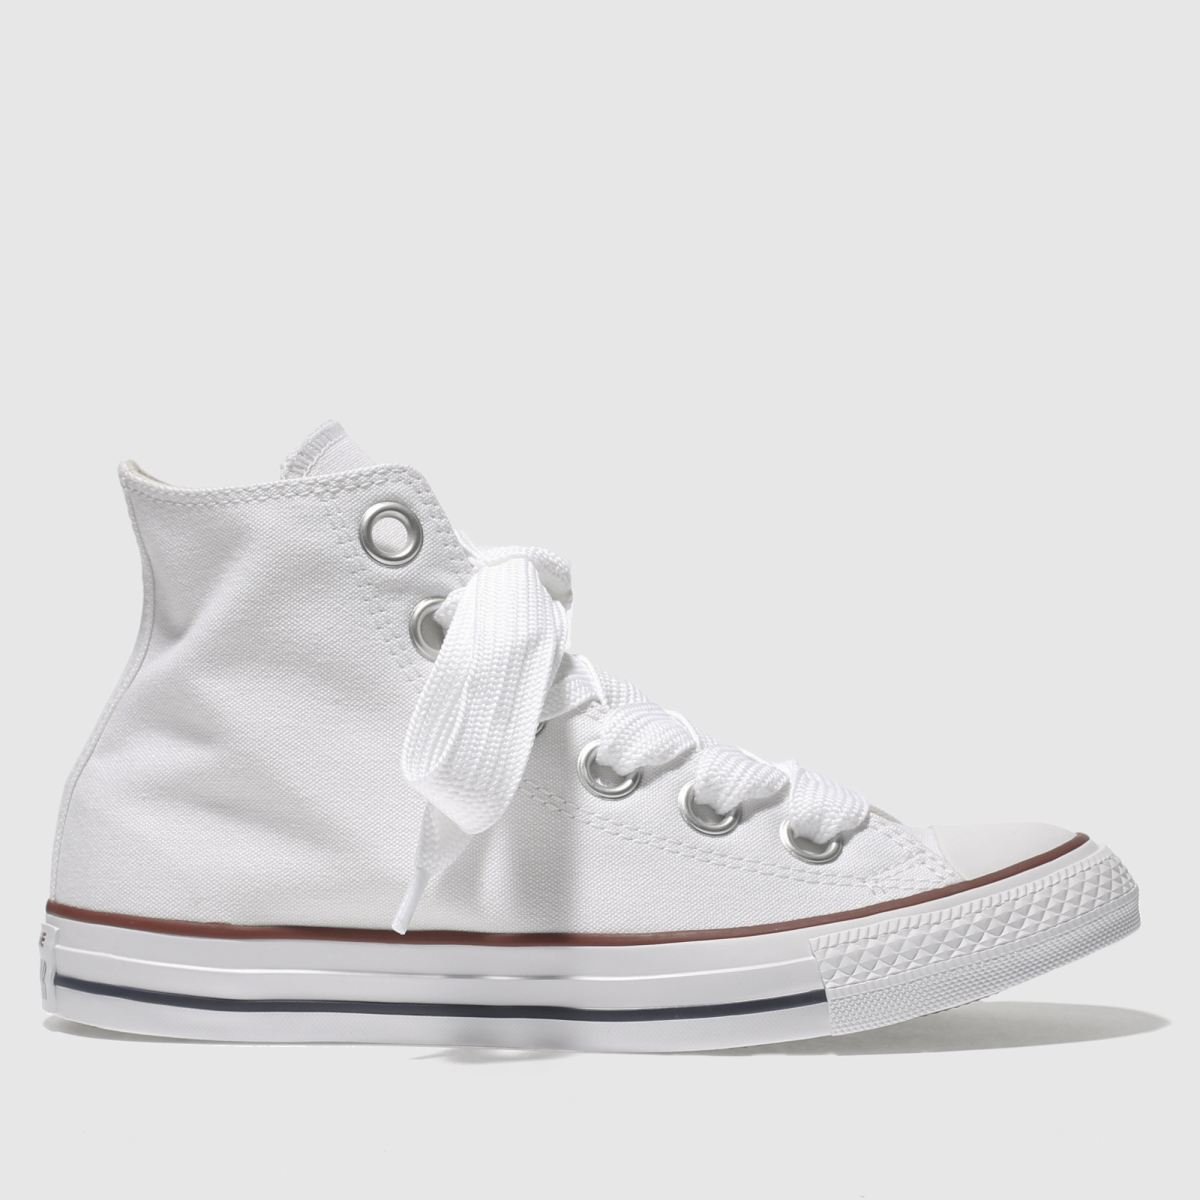 Converse White All Star Big Eyelets Hi Trainers